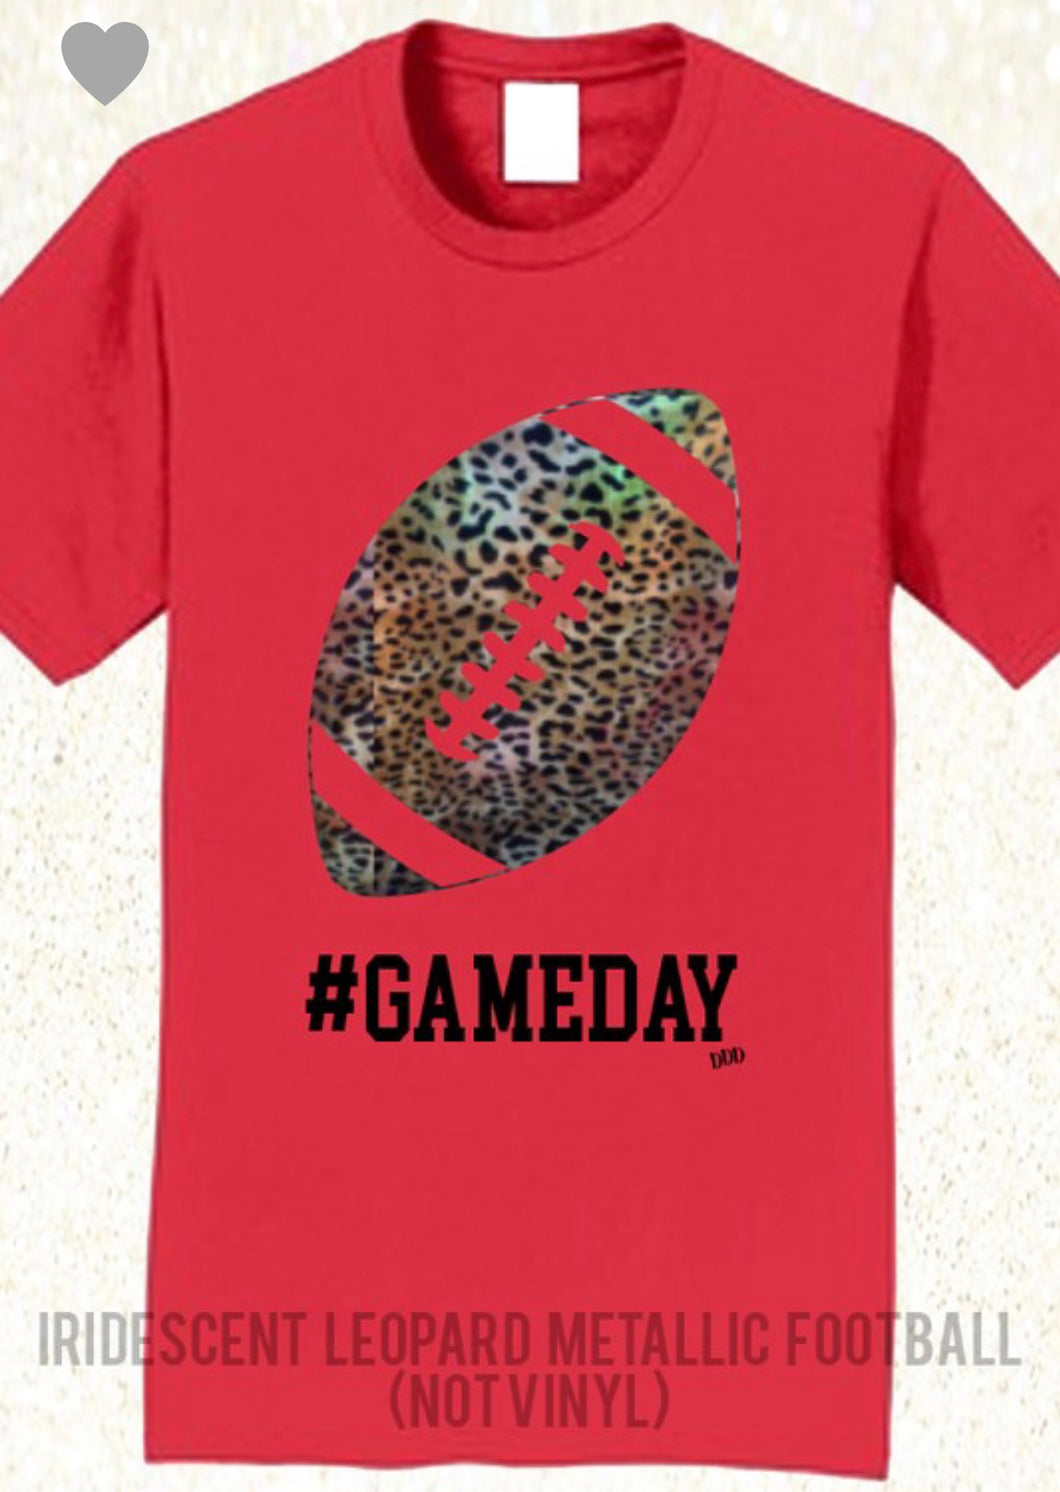 Leopard #gameday Tee free shipping